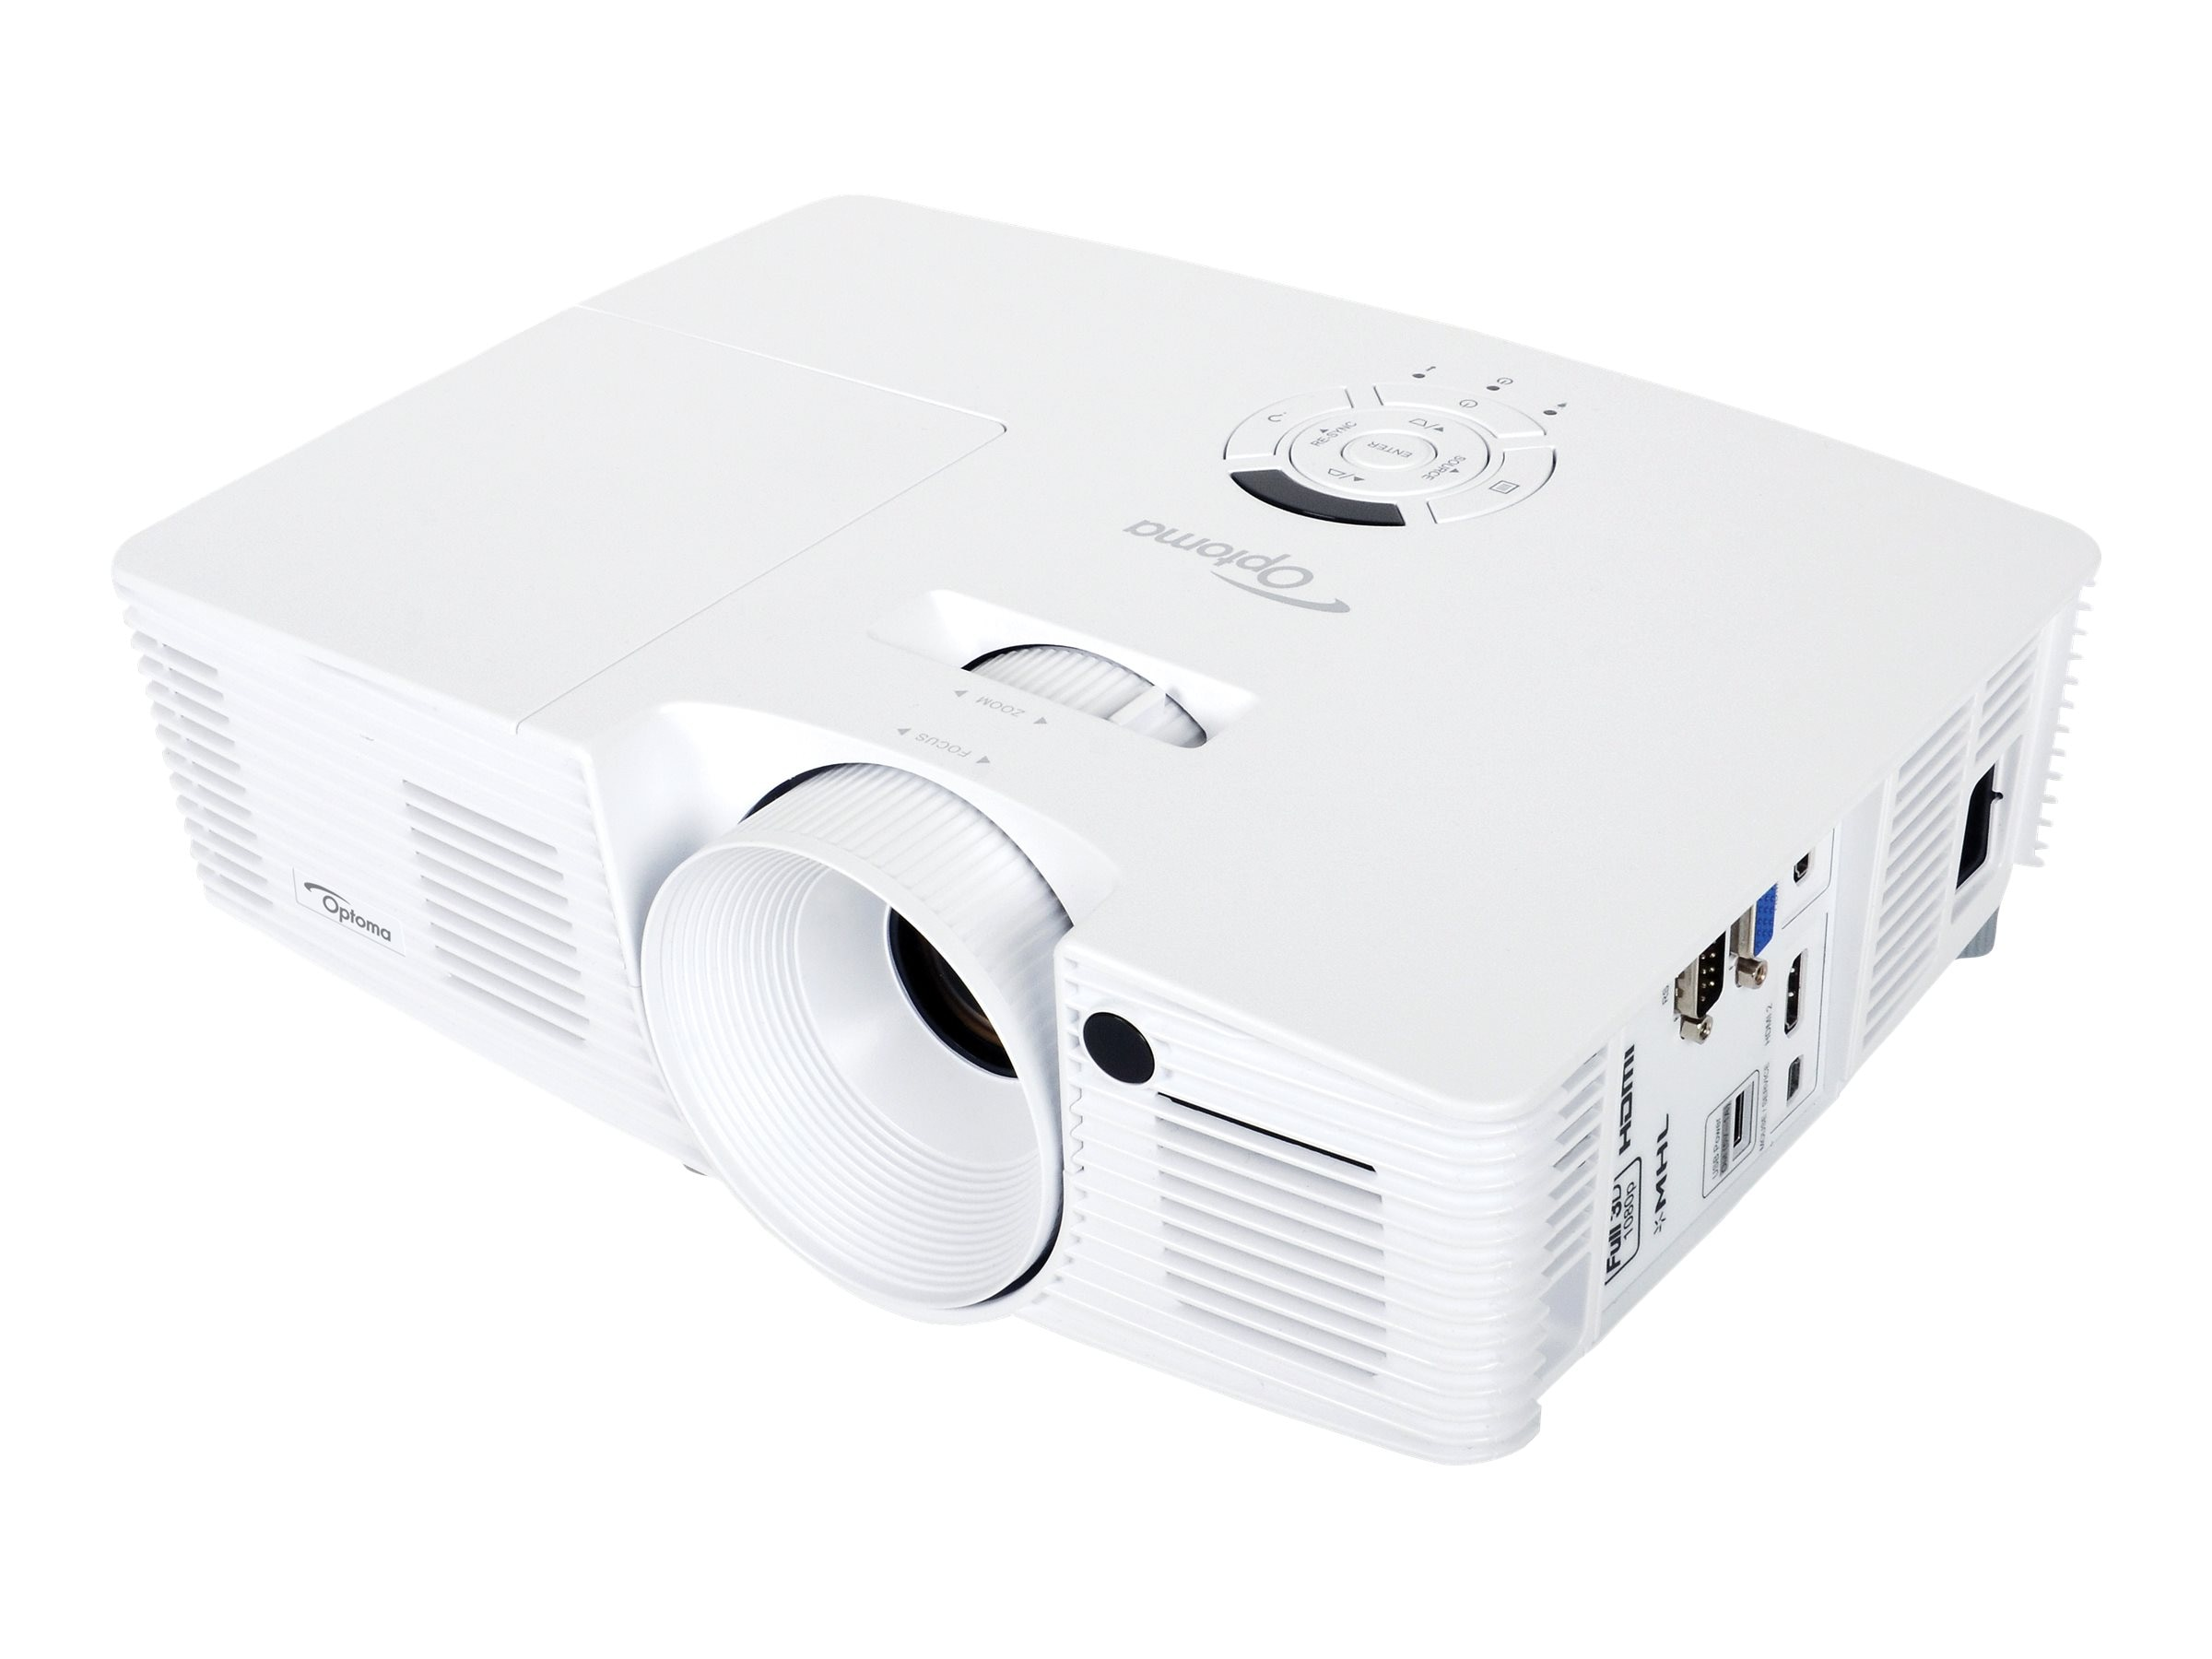 Optoma EH341 Full HD 3D DLP Projector, 3500 Lumens, White, EH341, 28505810, Projectors